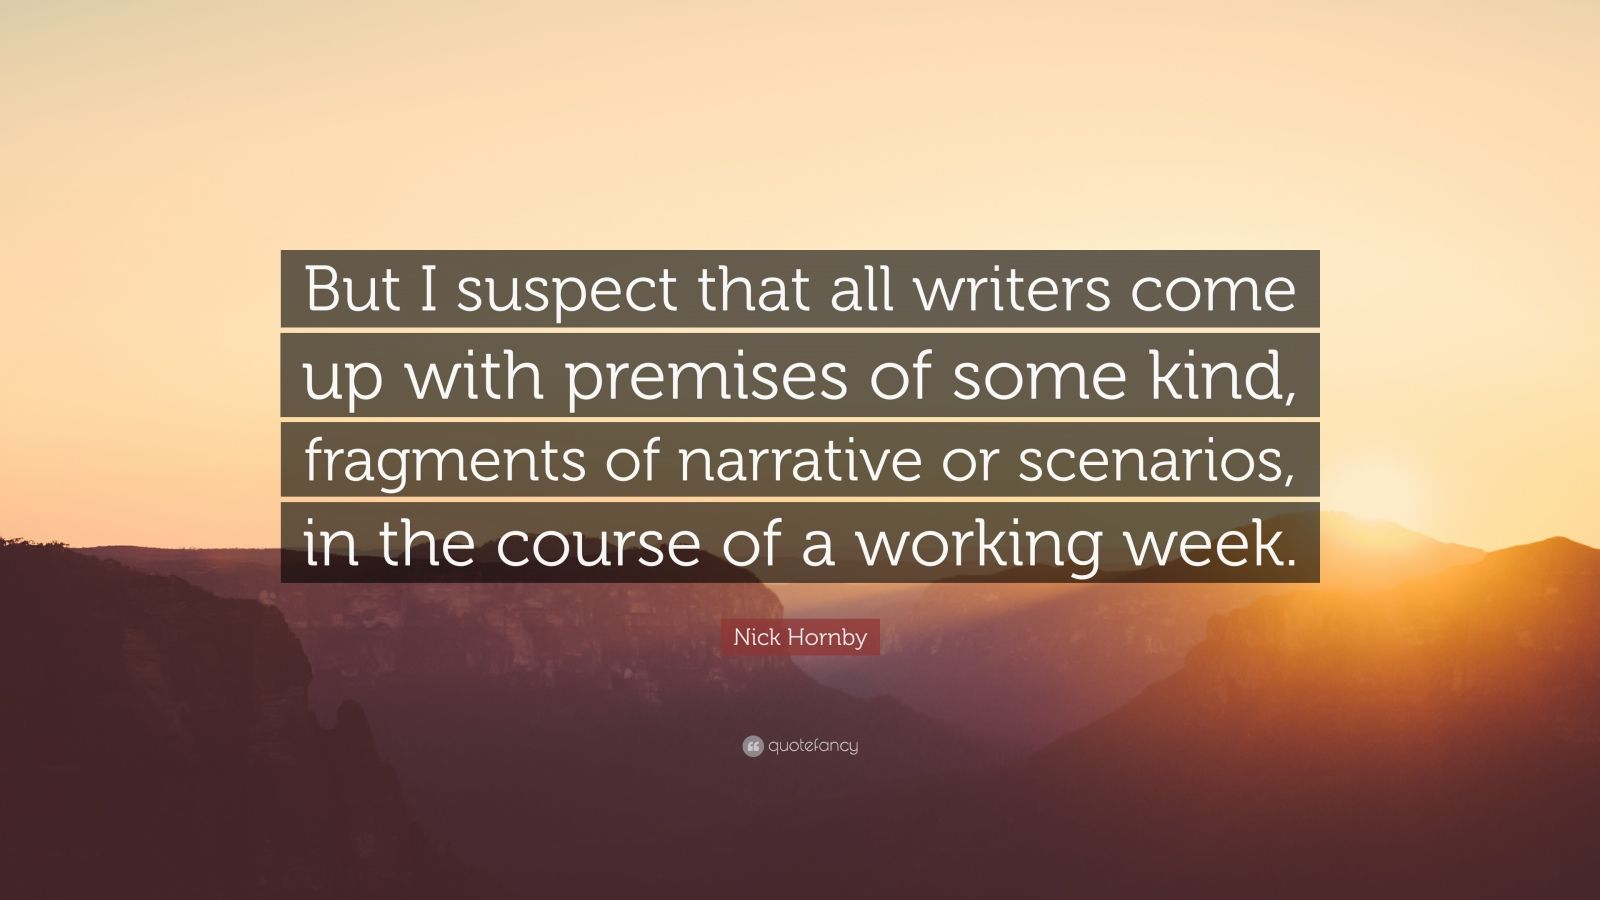 """Nick Hornby Quote: """"But I suspect that all writers come up with premises of some kind, fragments of narrative or scenarios, in the course of a working week."""""""